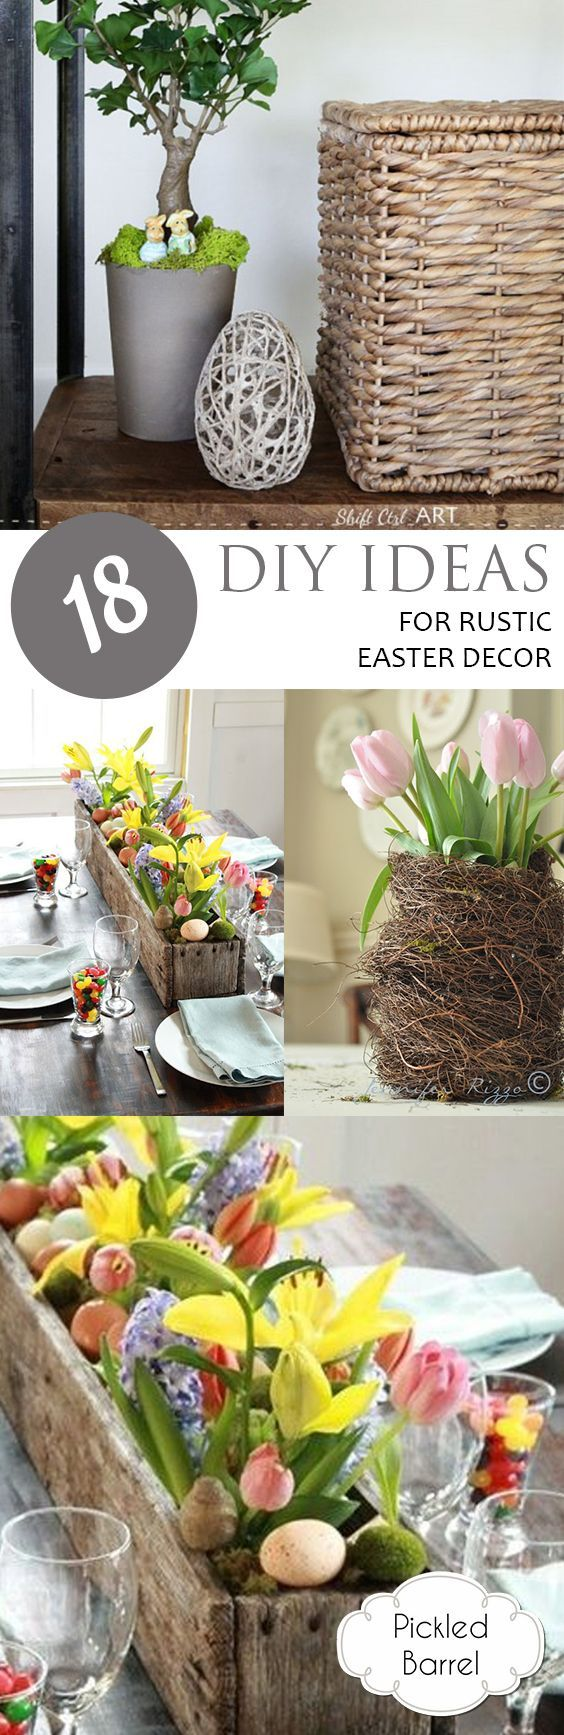 18 DIY Ideas for Rustic Easter Decor -